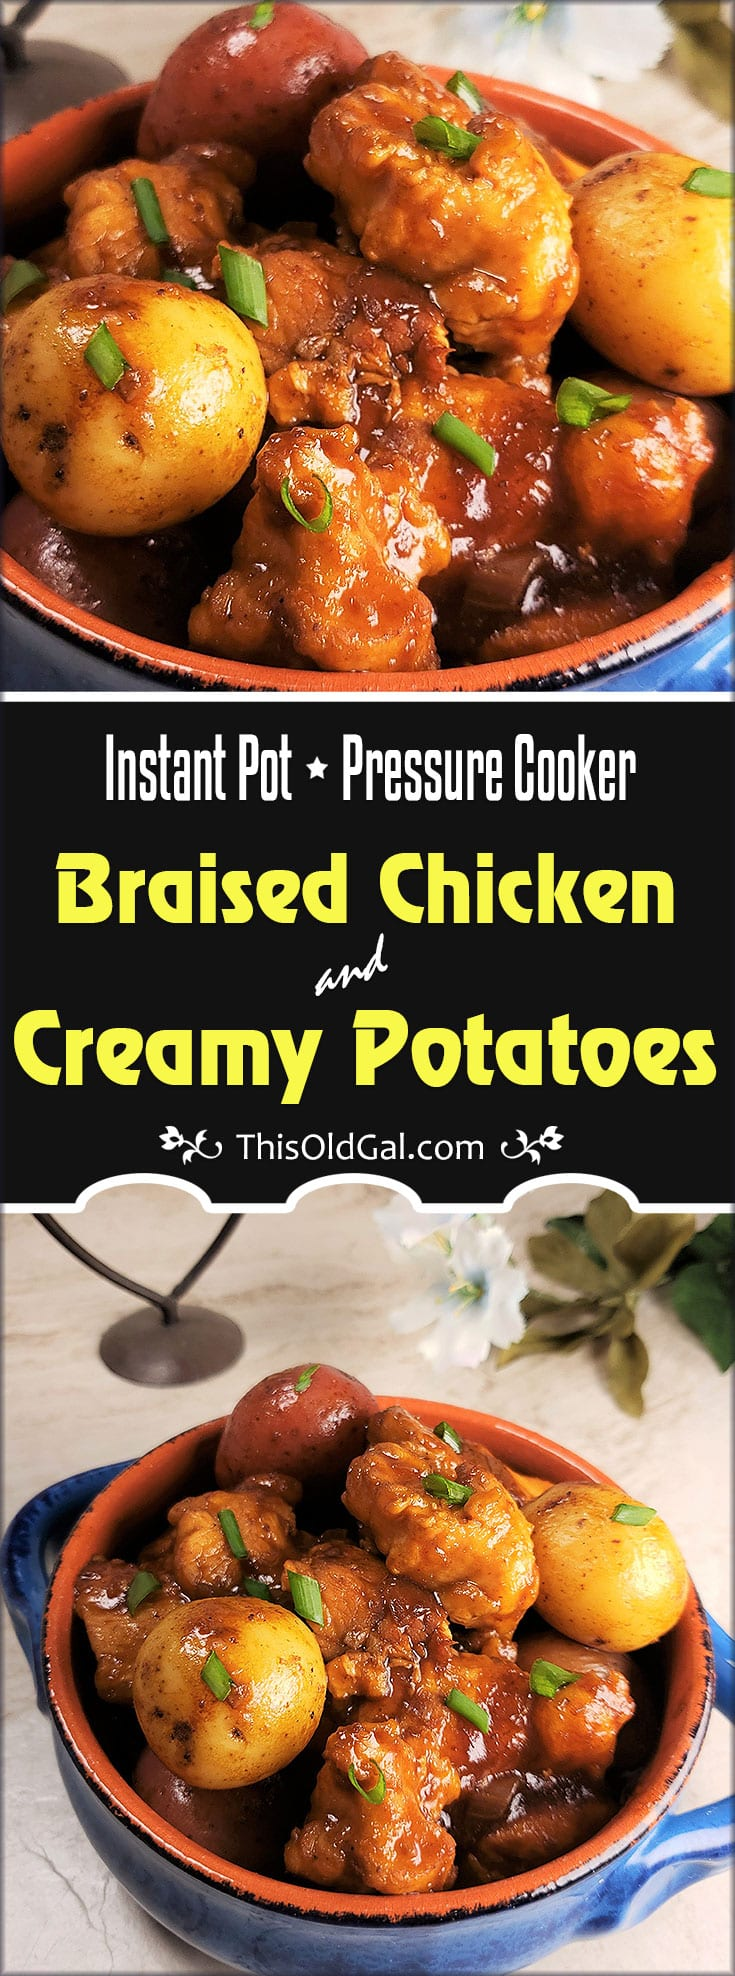 Instant Pot Pressure Cooker Braised Chicken & Creamy Potatoes